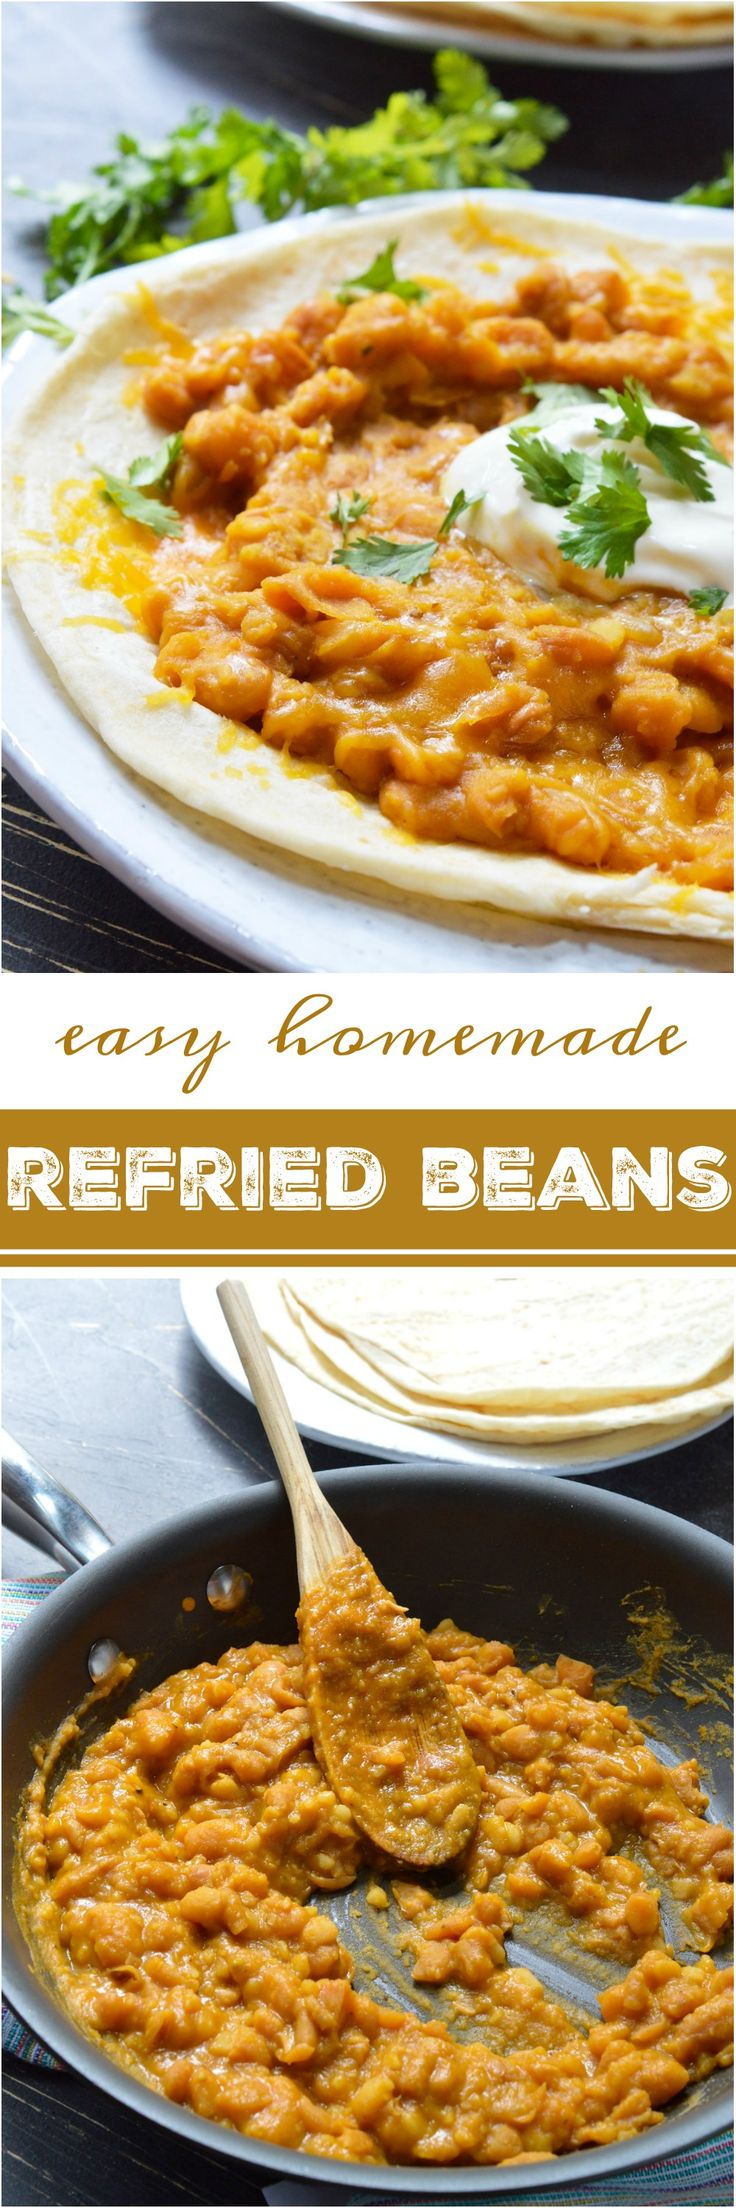 If you make this Refried Beans Recipe with Canary Beans you may never go back to the canned variety! This refried beans recipe is simple and produces the creamiest consistency thanks to the Canary Beans, also known as Mayocoba beans. These Peruvian beans are similar to pinto beans and taste great with any of your favorite Mexican dishes! vegetarian and vegan options included #ad